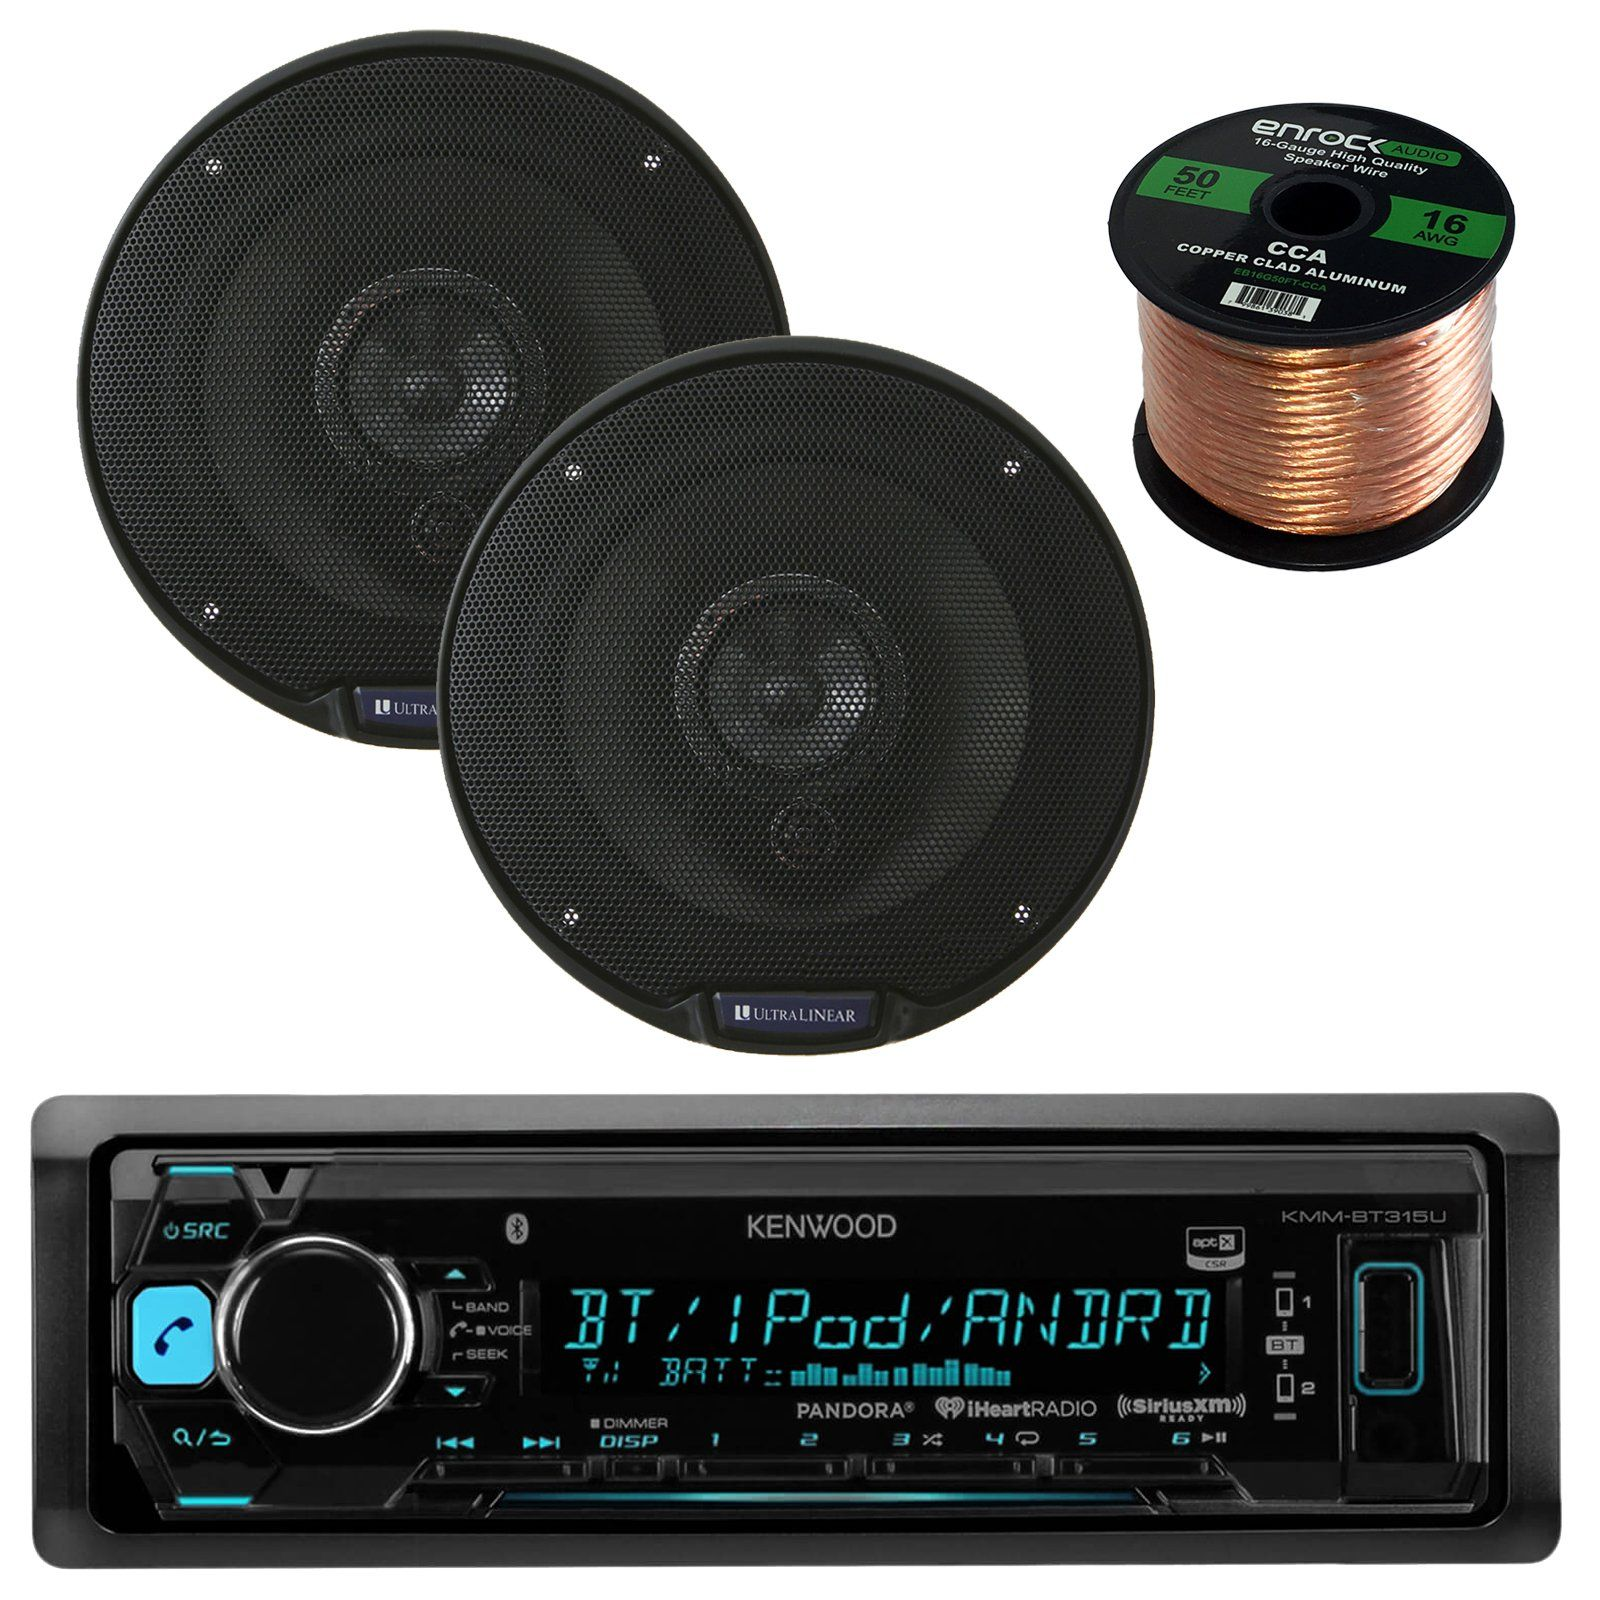 medium resolution of kenwood kmmbt315u single din bluetooth in dash car stereo receiver bundle combo with set of 2 linear ul651 200w 6 5 inch 3 way coaxial car audio speakers